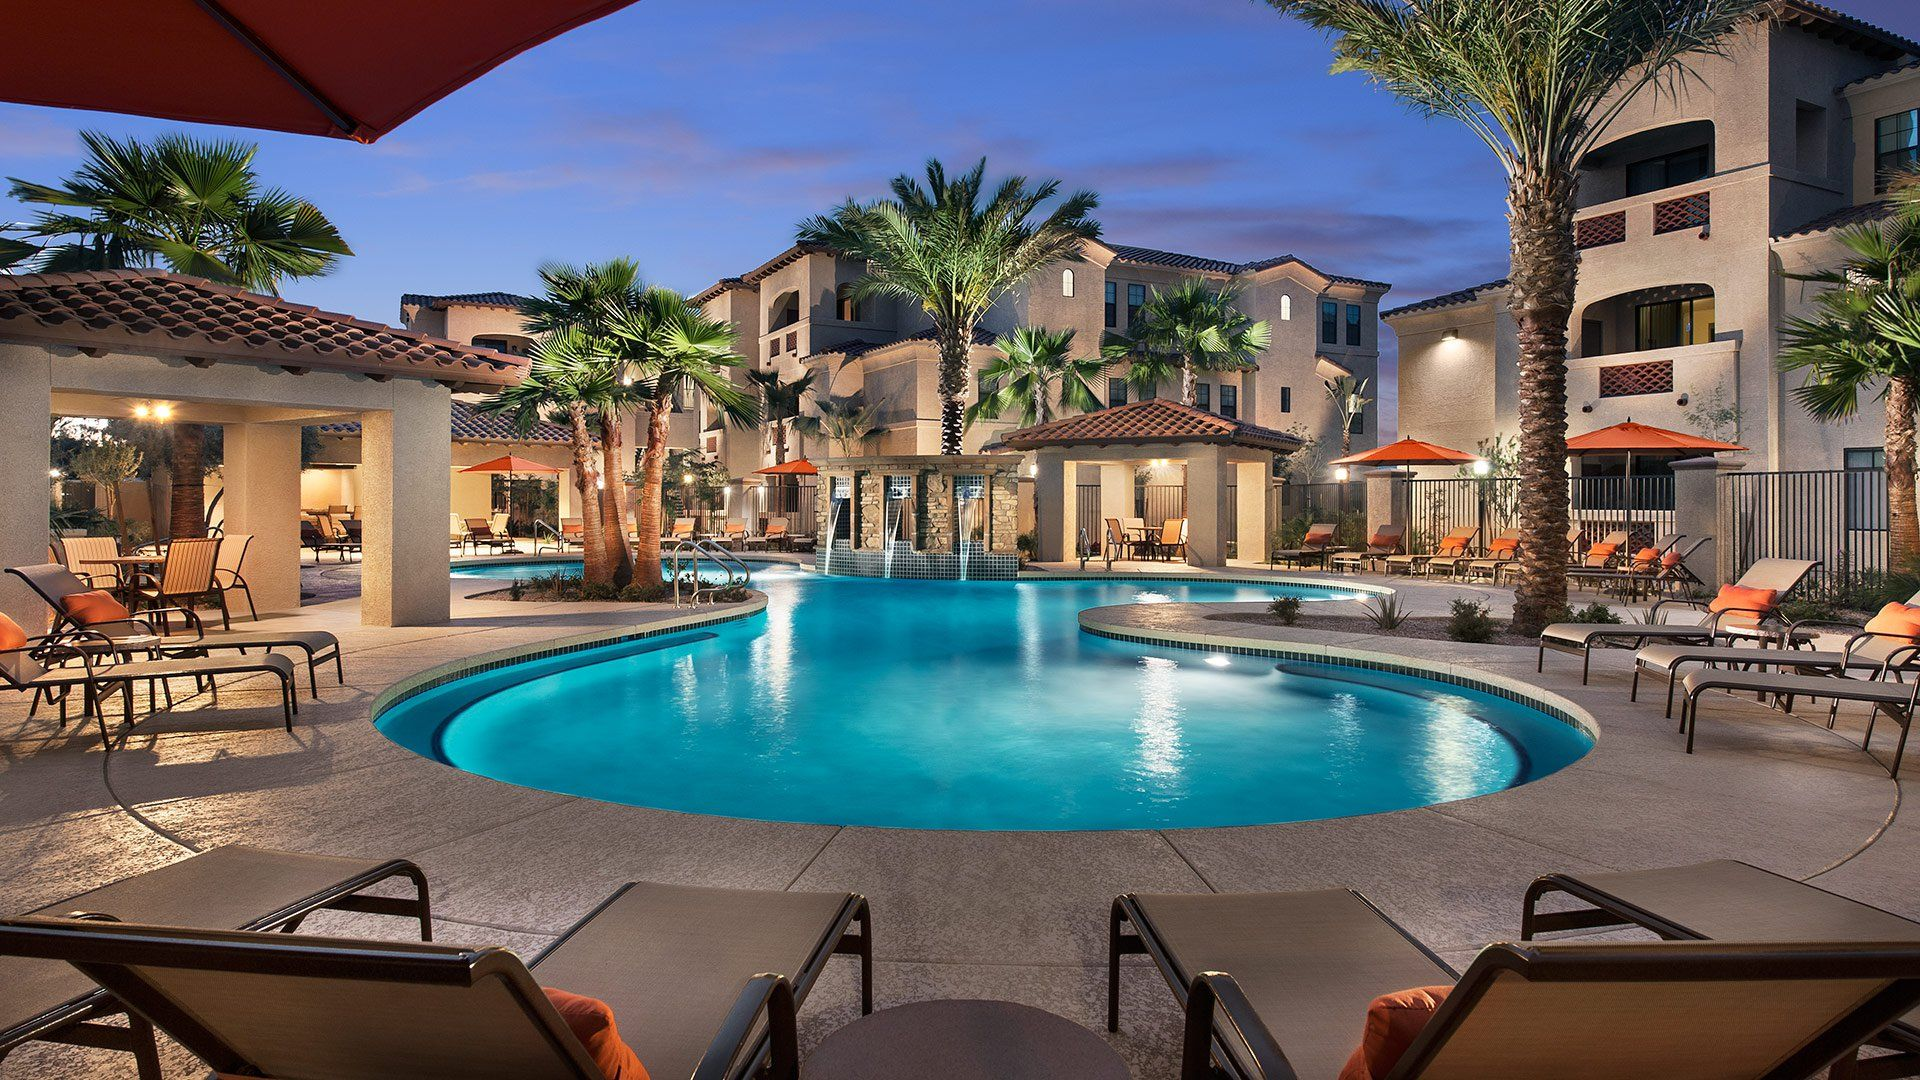 Luxury Apartments In Phoenix San Milan North Phoenix Luxury Apartments Apartment Pool 2 Bedroom Apartment Apartments For Rent